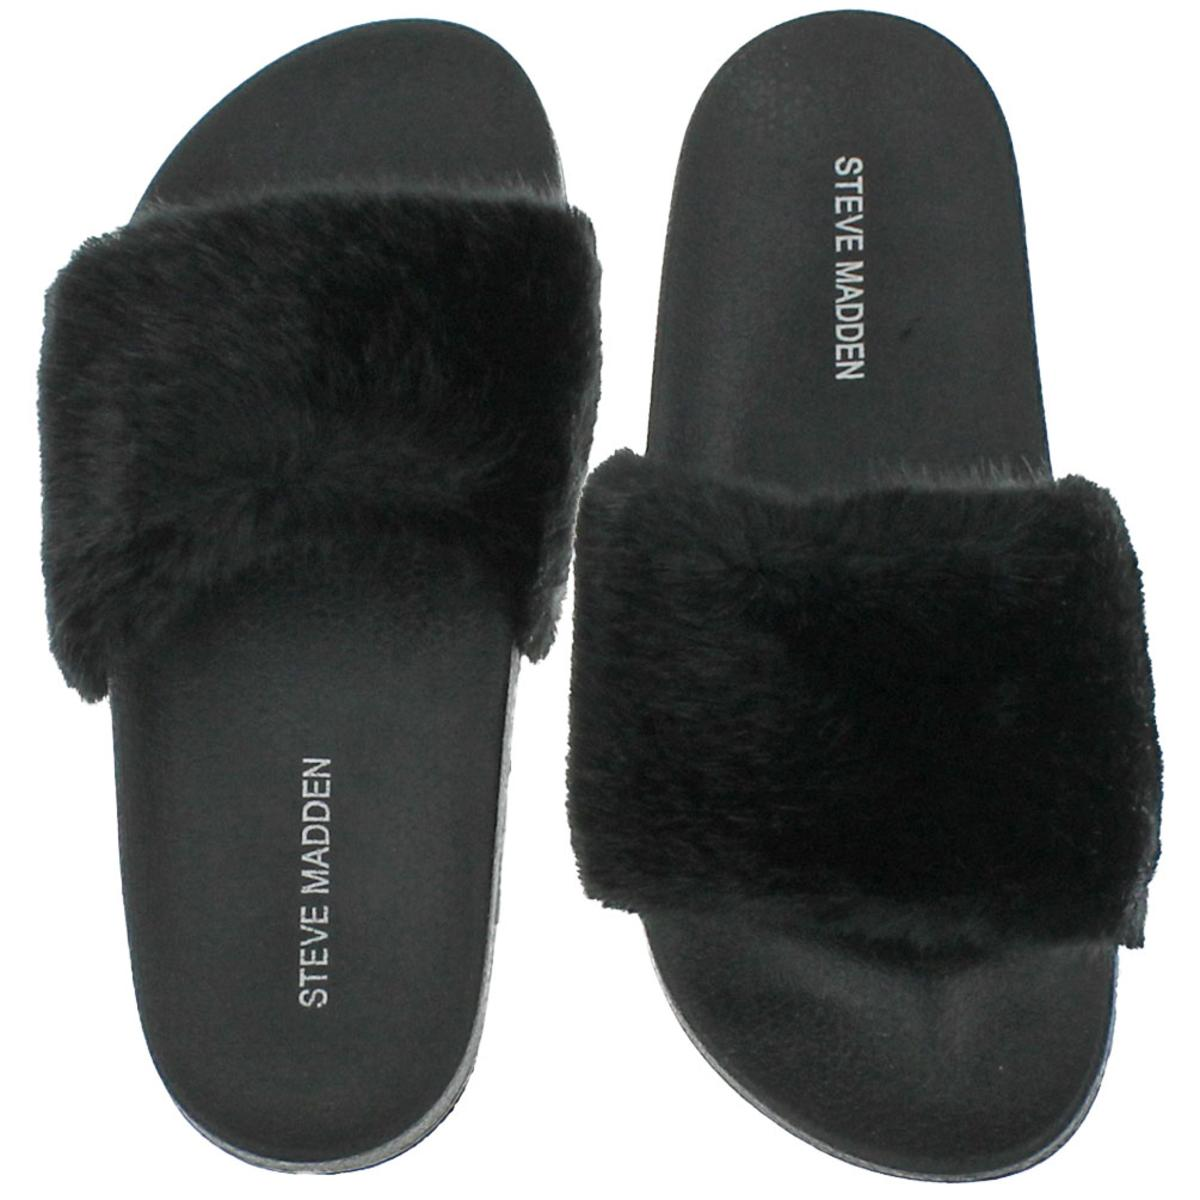 Steve-Madden-Softey-Women-039-s-Faux-Fur-Casual-Spa-Pool-Slide-Sandals-Shoes thumbnail 4